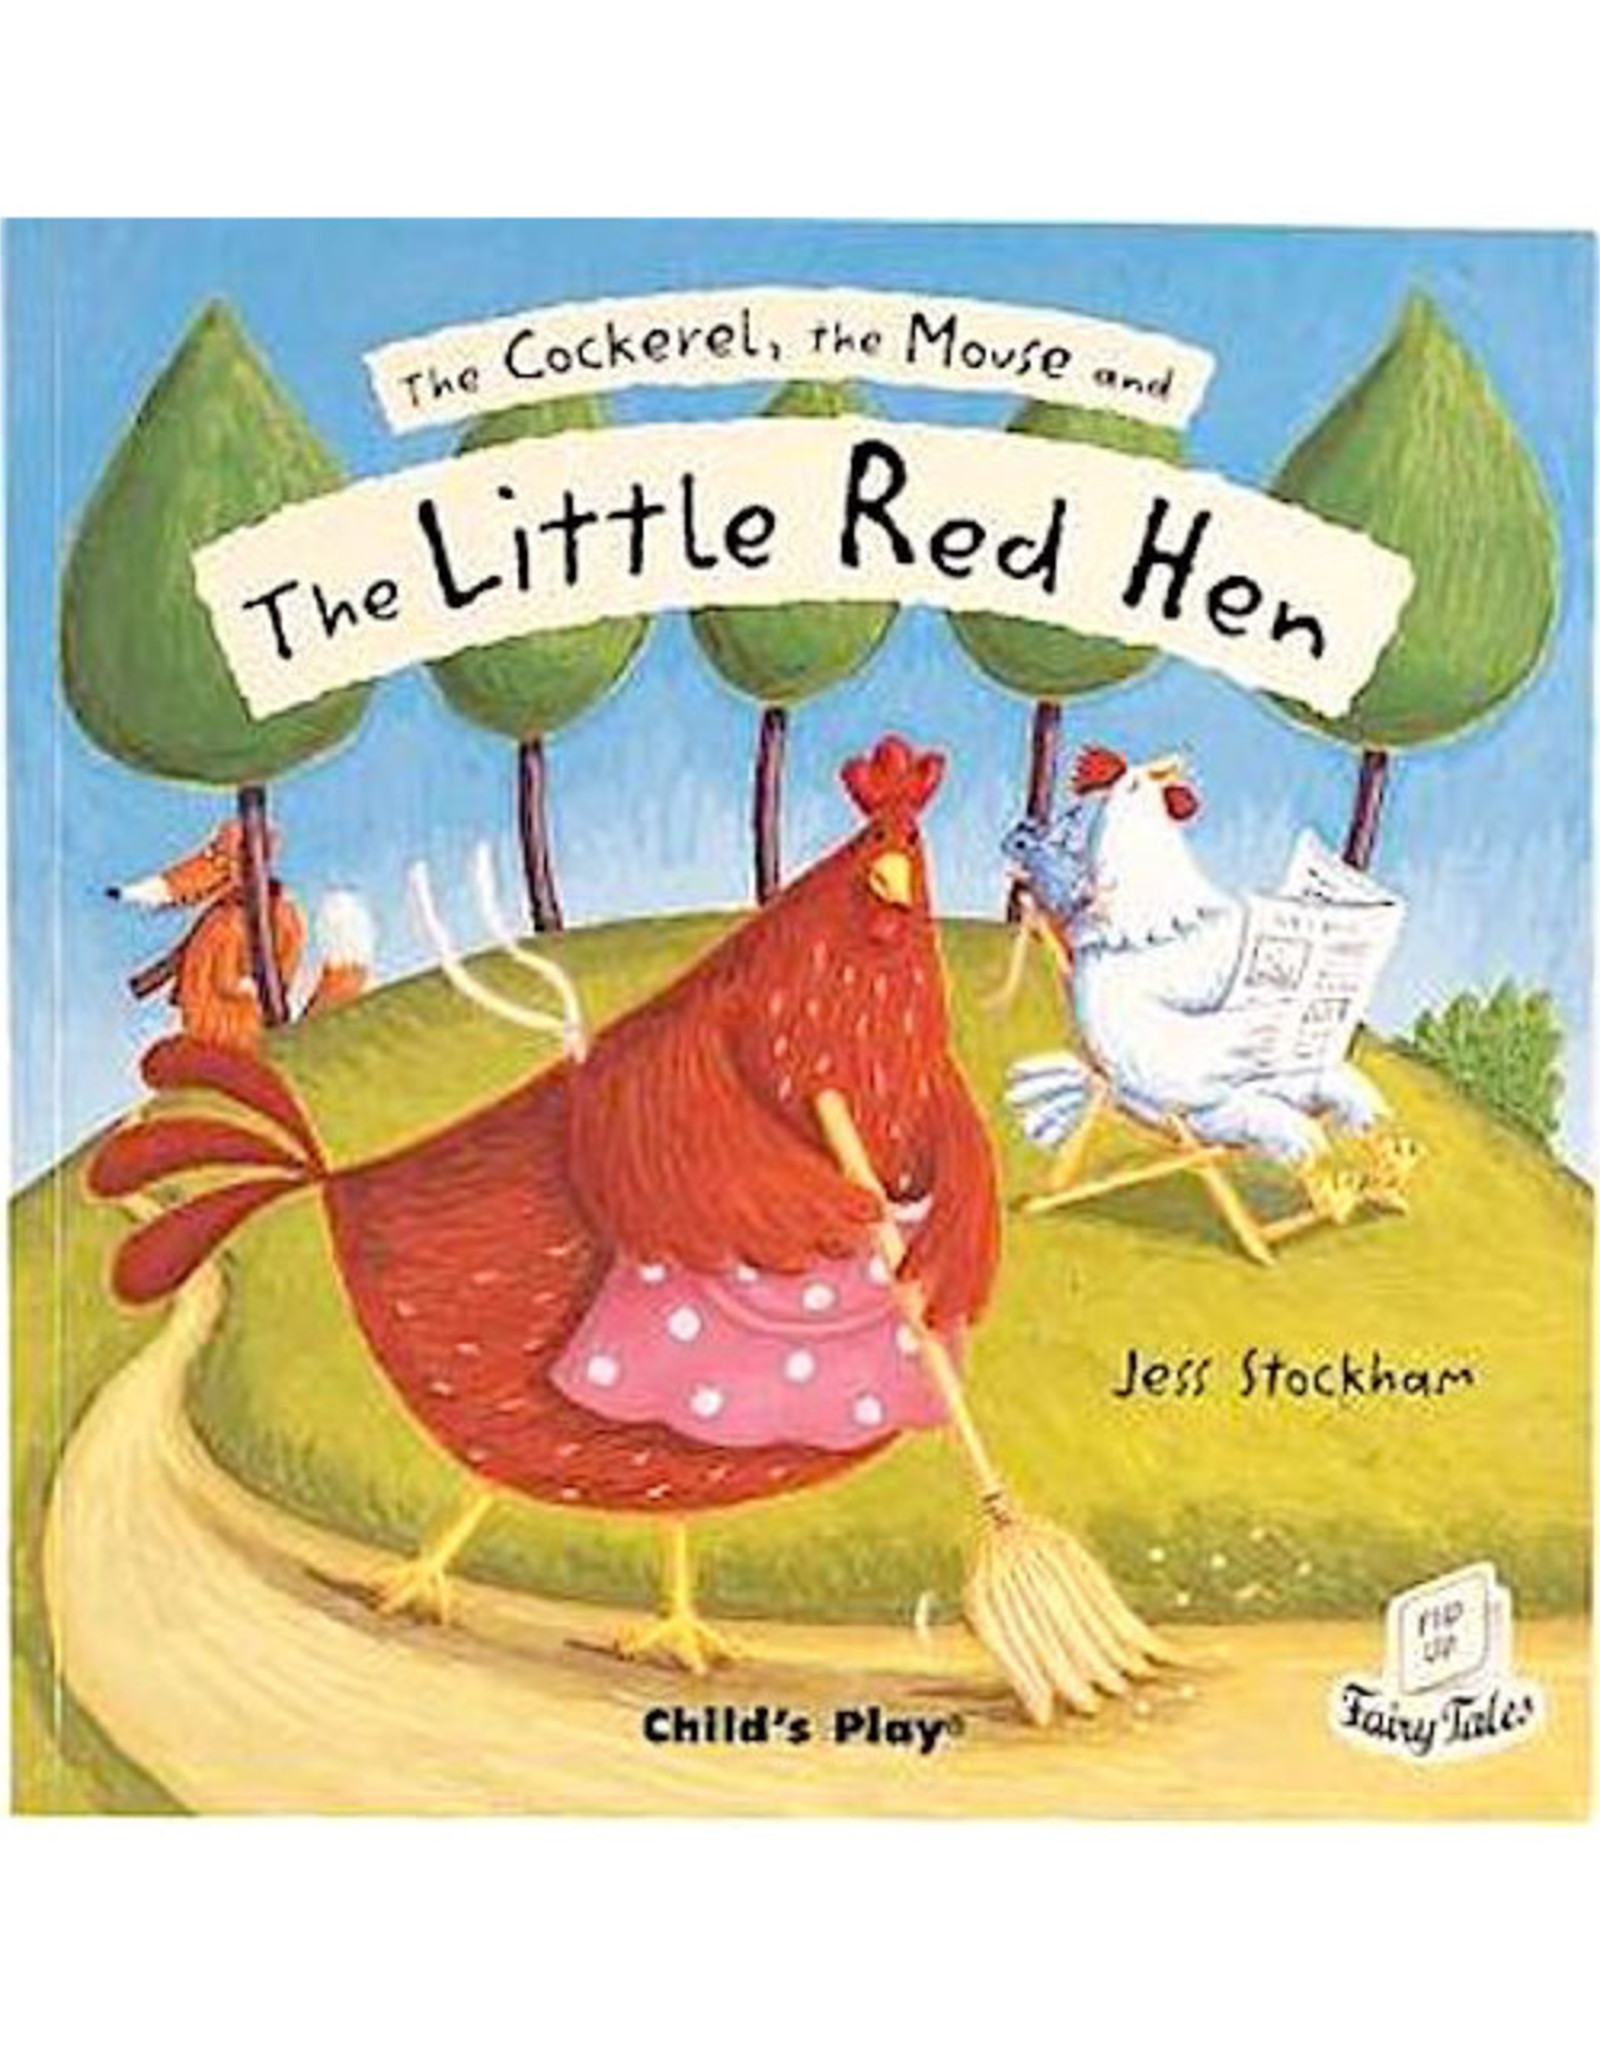 child's play The Cockerel, the Mouse, and The Little Red Hen